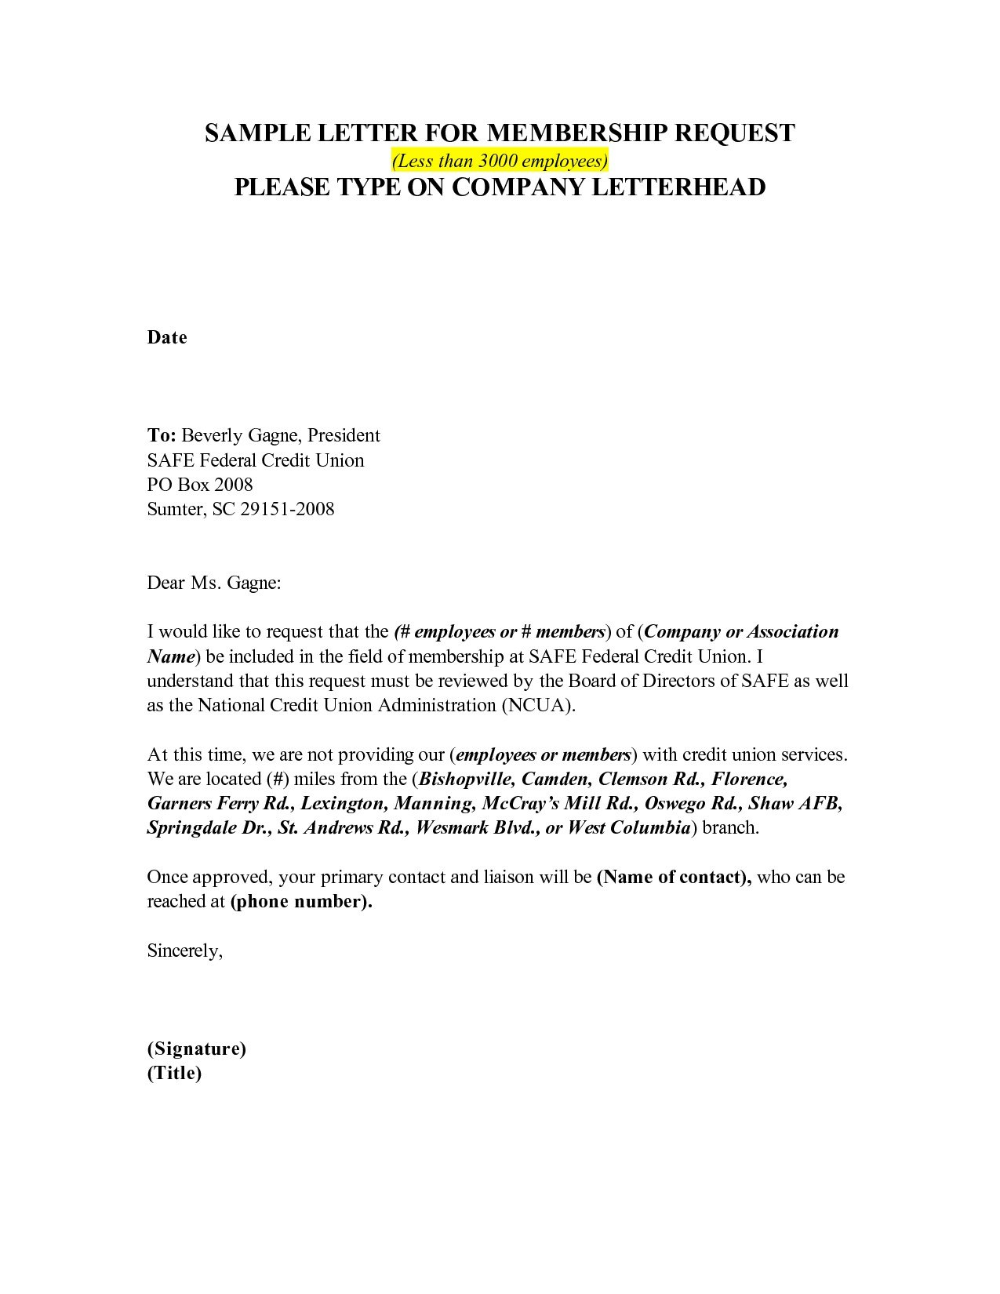 Gym Membership Cancellation Letter Examples : membership, cancellation, letter, examples, Contract, Cancellation, Letter, Template, Samples, Cover, Pertaining, Membership, Lett…, Templates, Free,, Lettering,